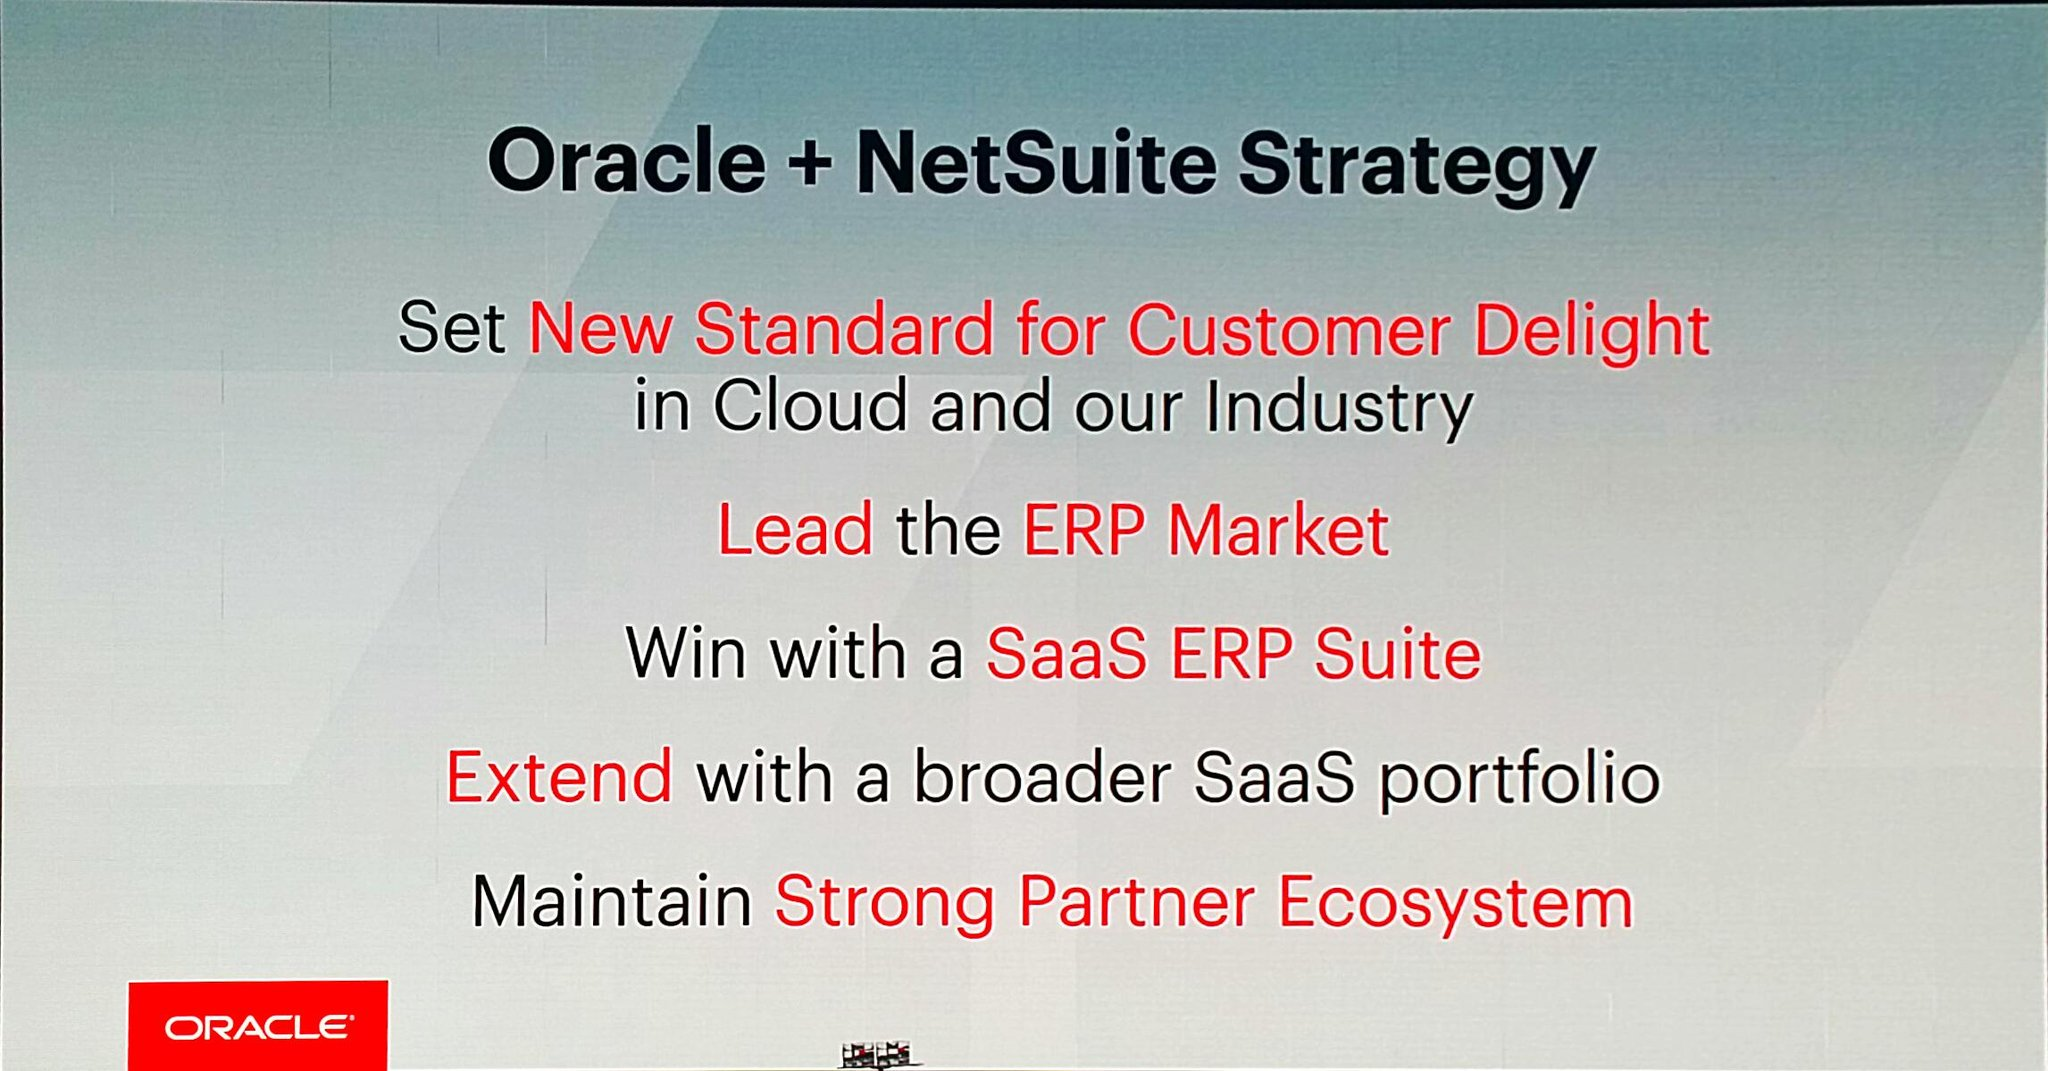 [1Slide] @Oracle and @NetSuite - ERP market leadership stands out. #SuiteWorld17 https://t.co/qebUtWQ5wr